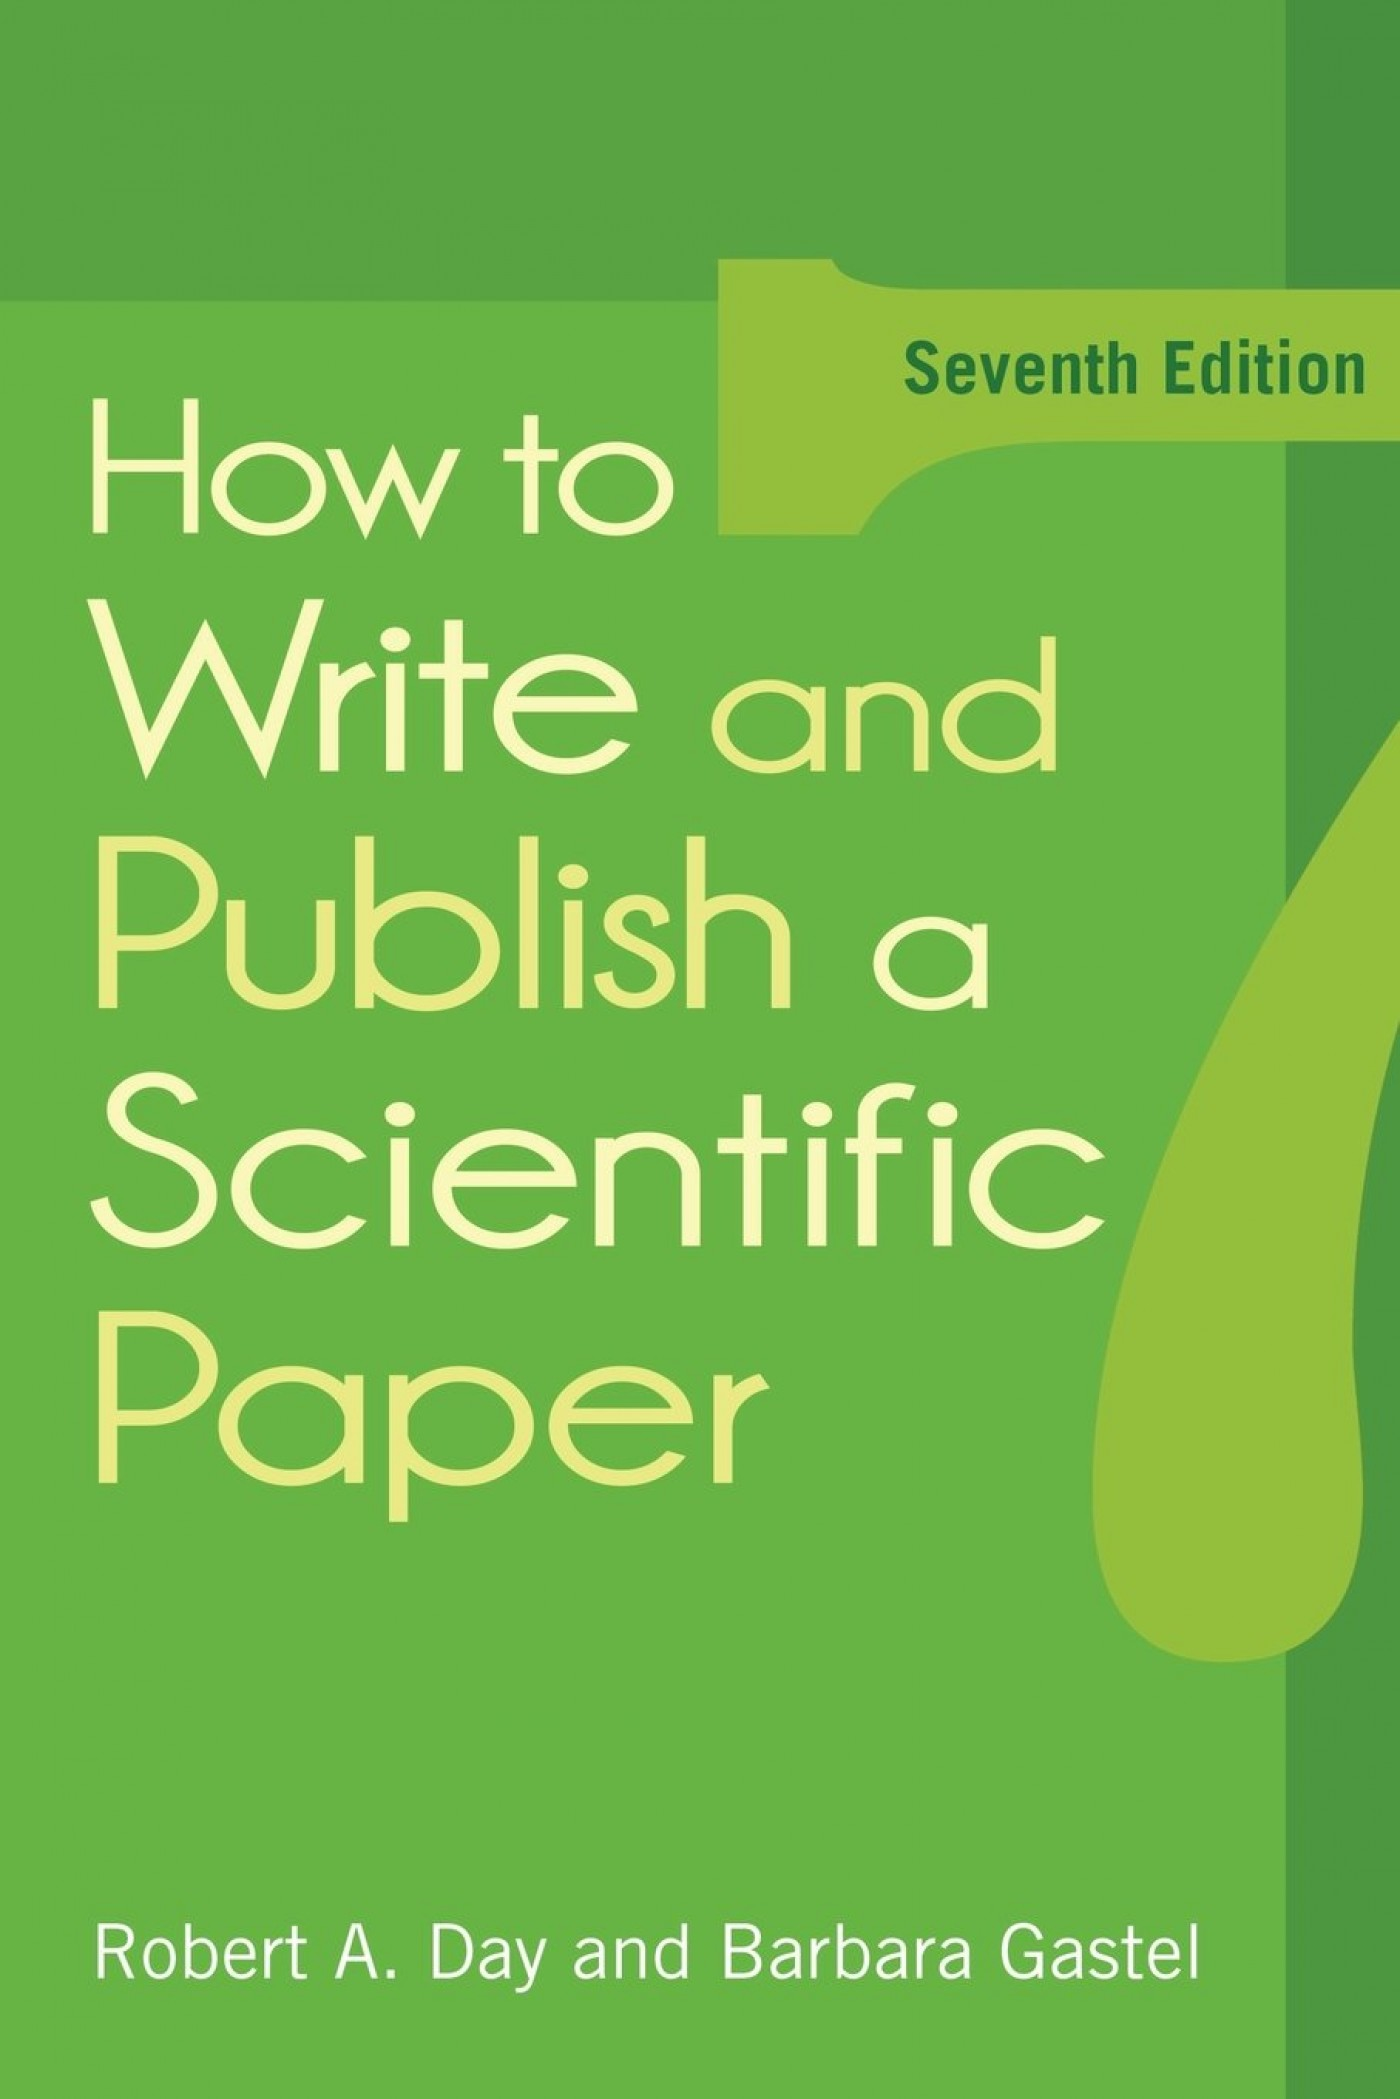 001 Research Paper 61akxkcqzal How To Write And Publish Scientific Surprising A Pdf 1400